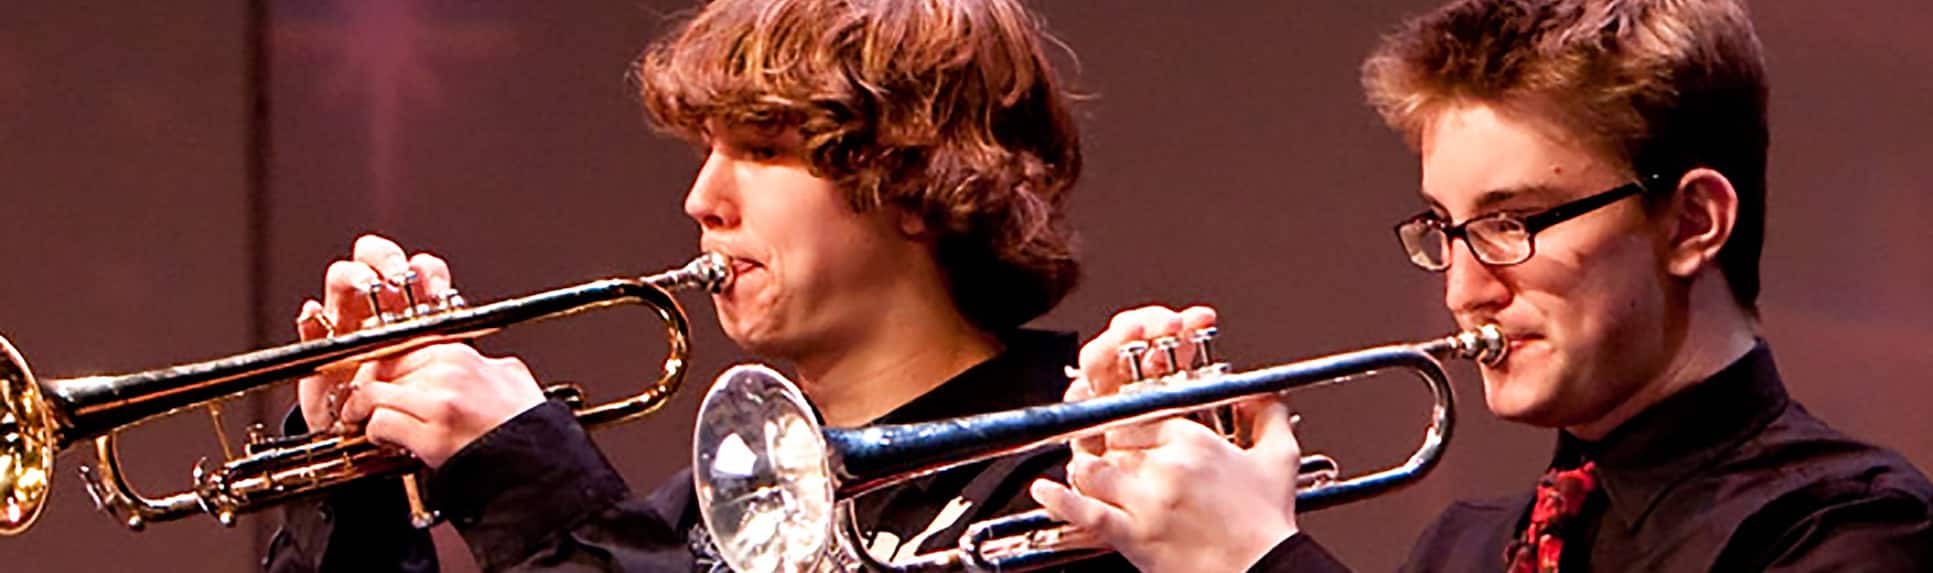 Young performers playing trumpets